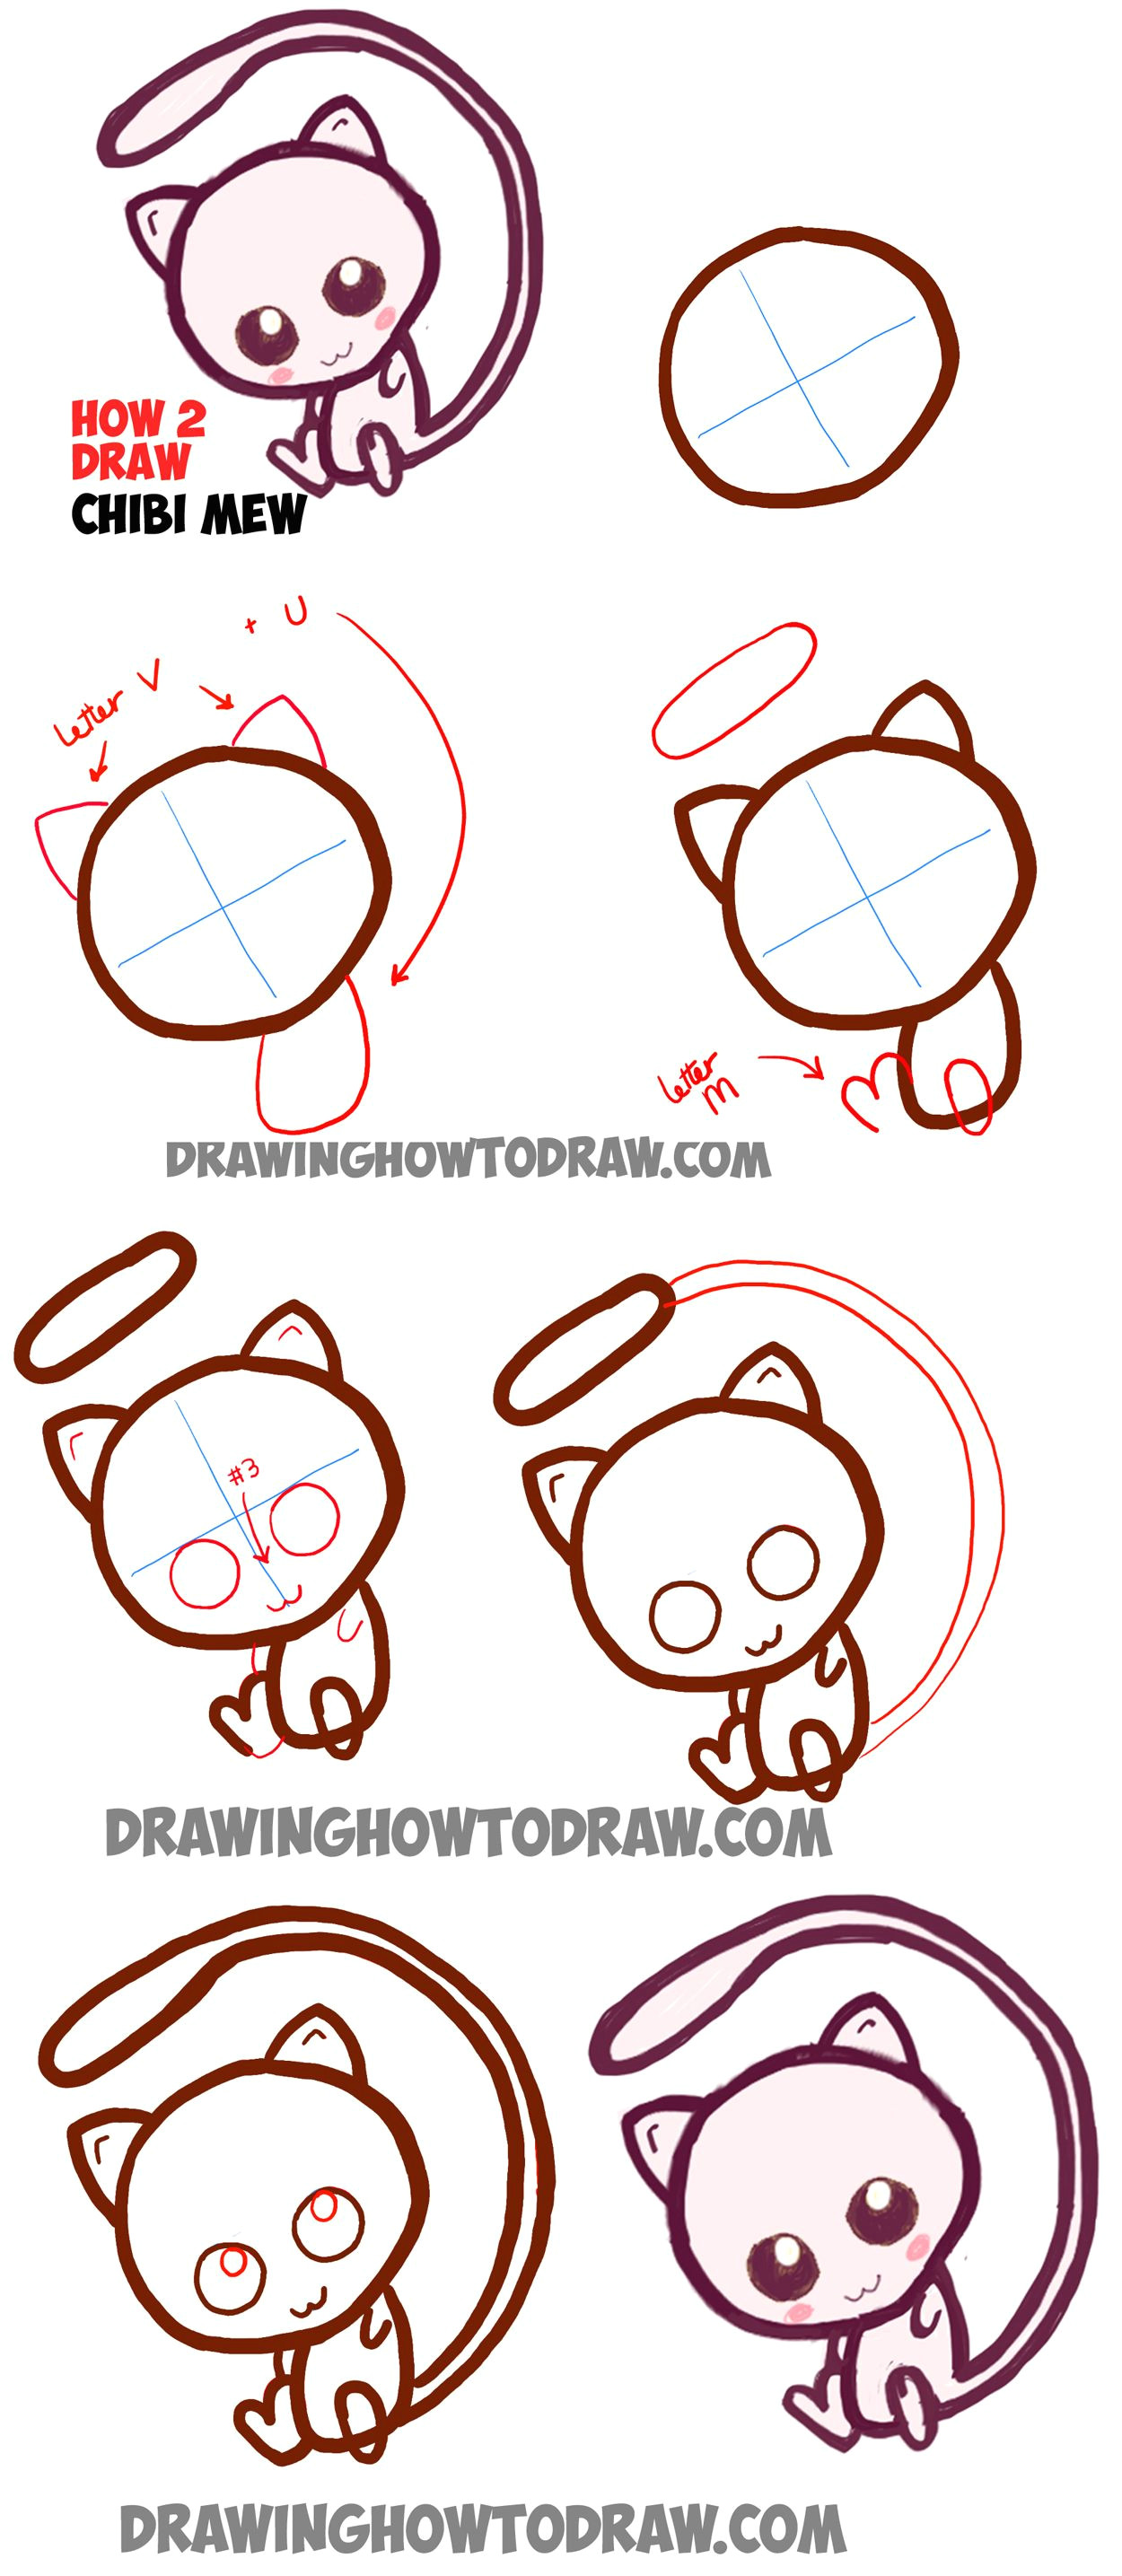 learn how to draw cute baby chibi mew from pokemon simle steps drawing lesson easy pokemon